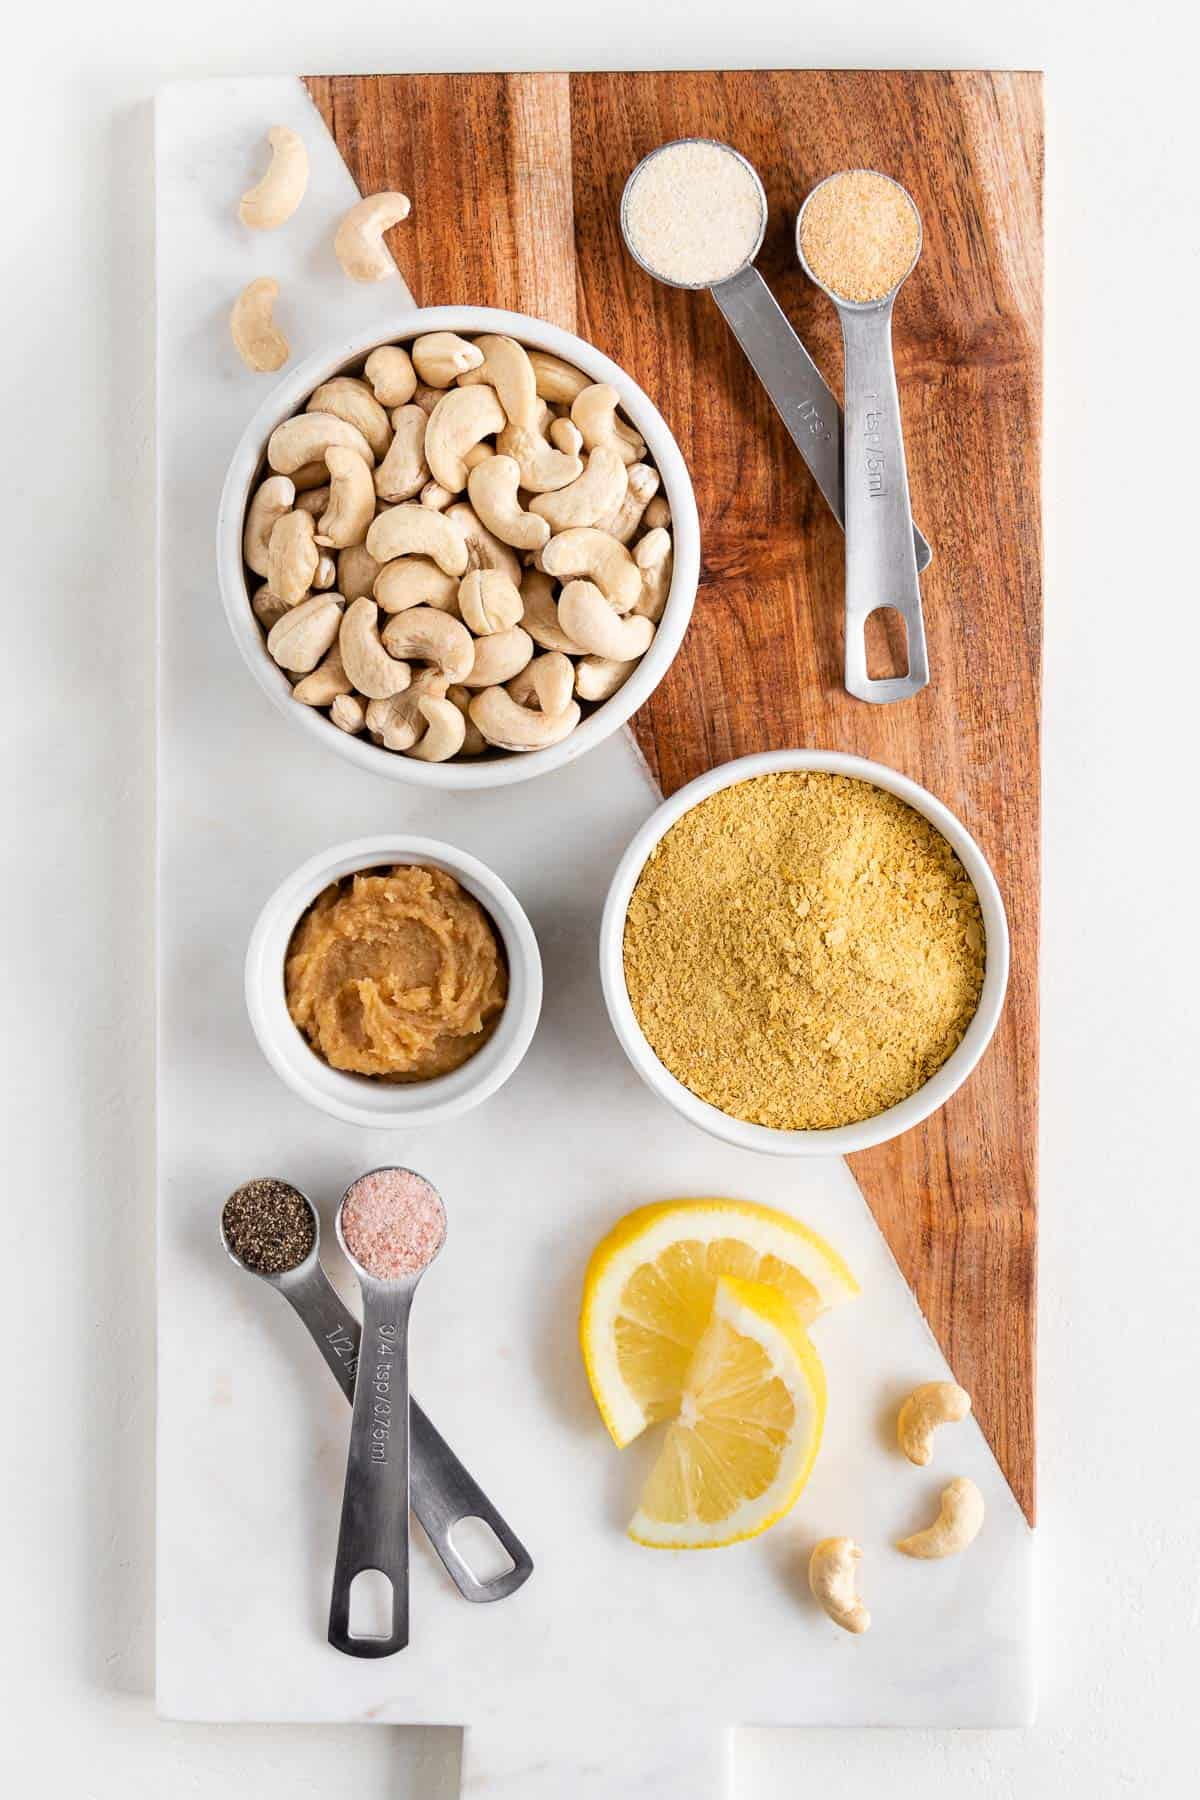 a wood and marble cutting board topped with bowls of cashews, nutritional yeast, white miso paste, salt, pepper, and lemon slices